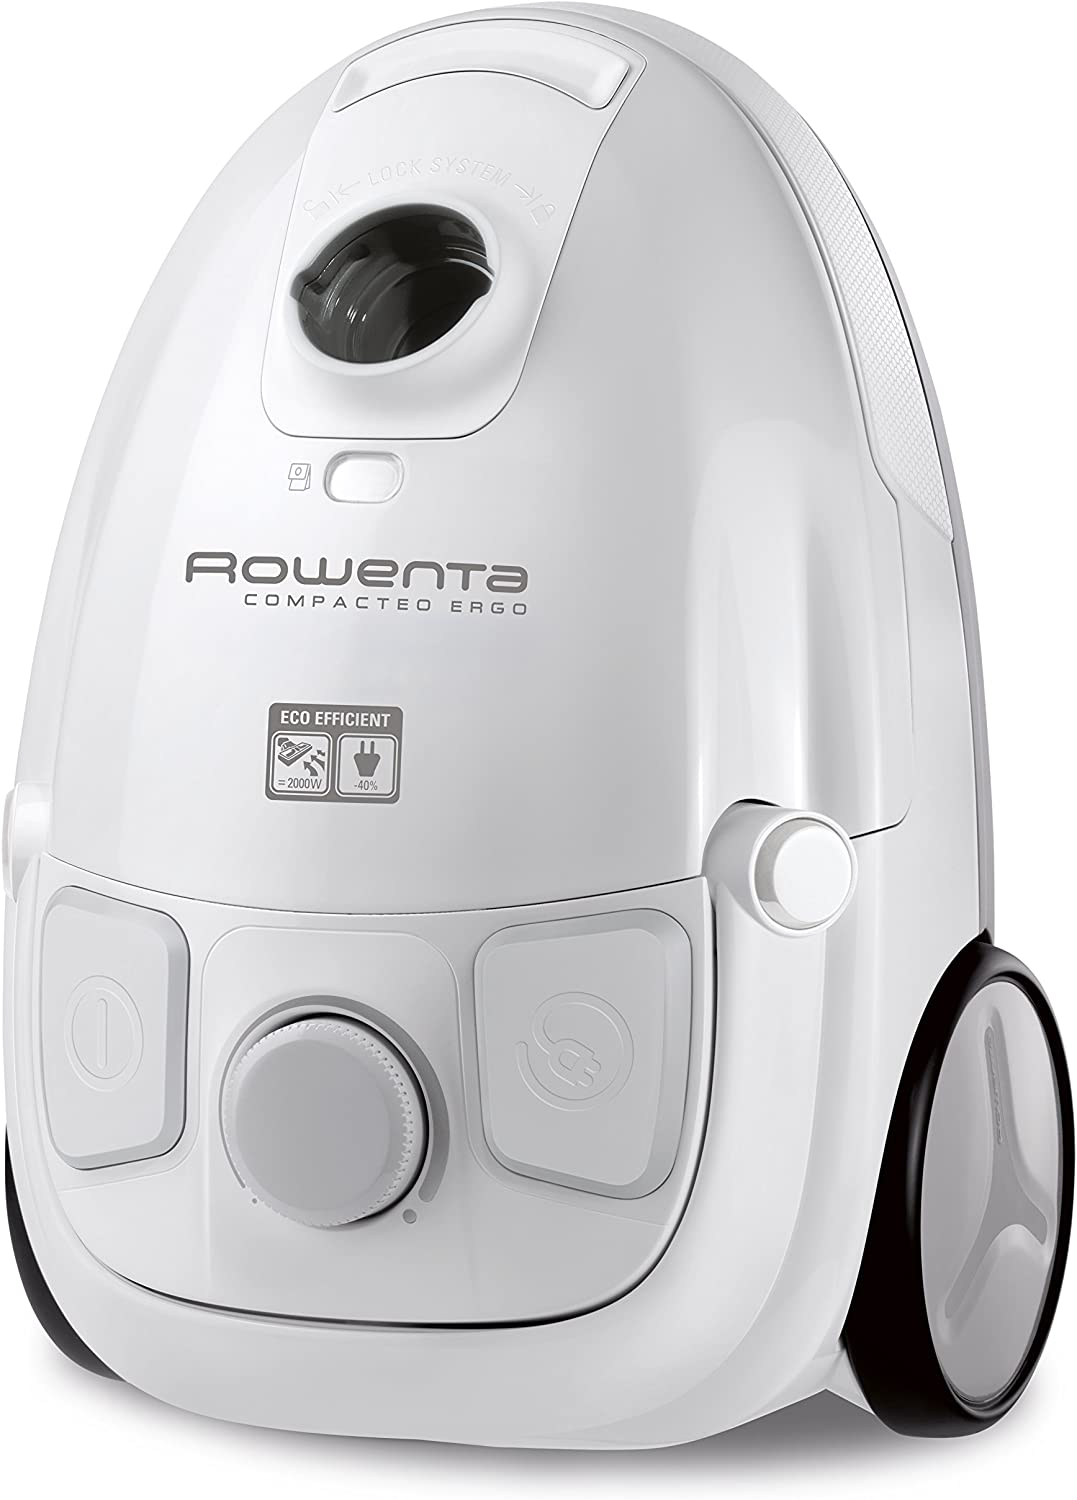 Rowenta RO5227EA - Aspiradora, 2000 W, color blanco: Amazon.es: Hogar